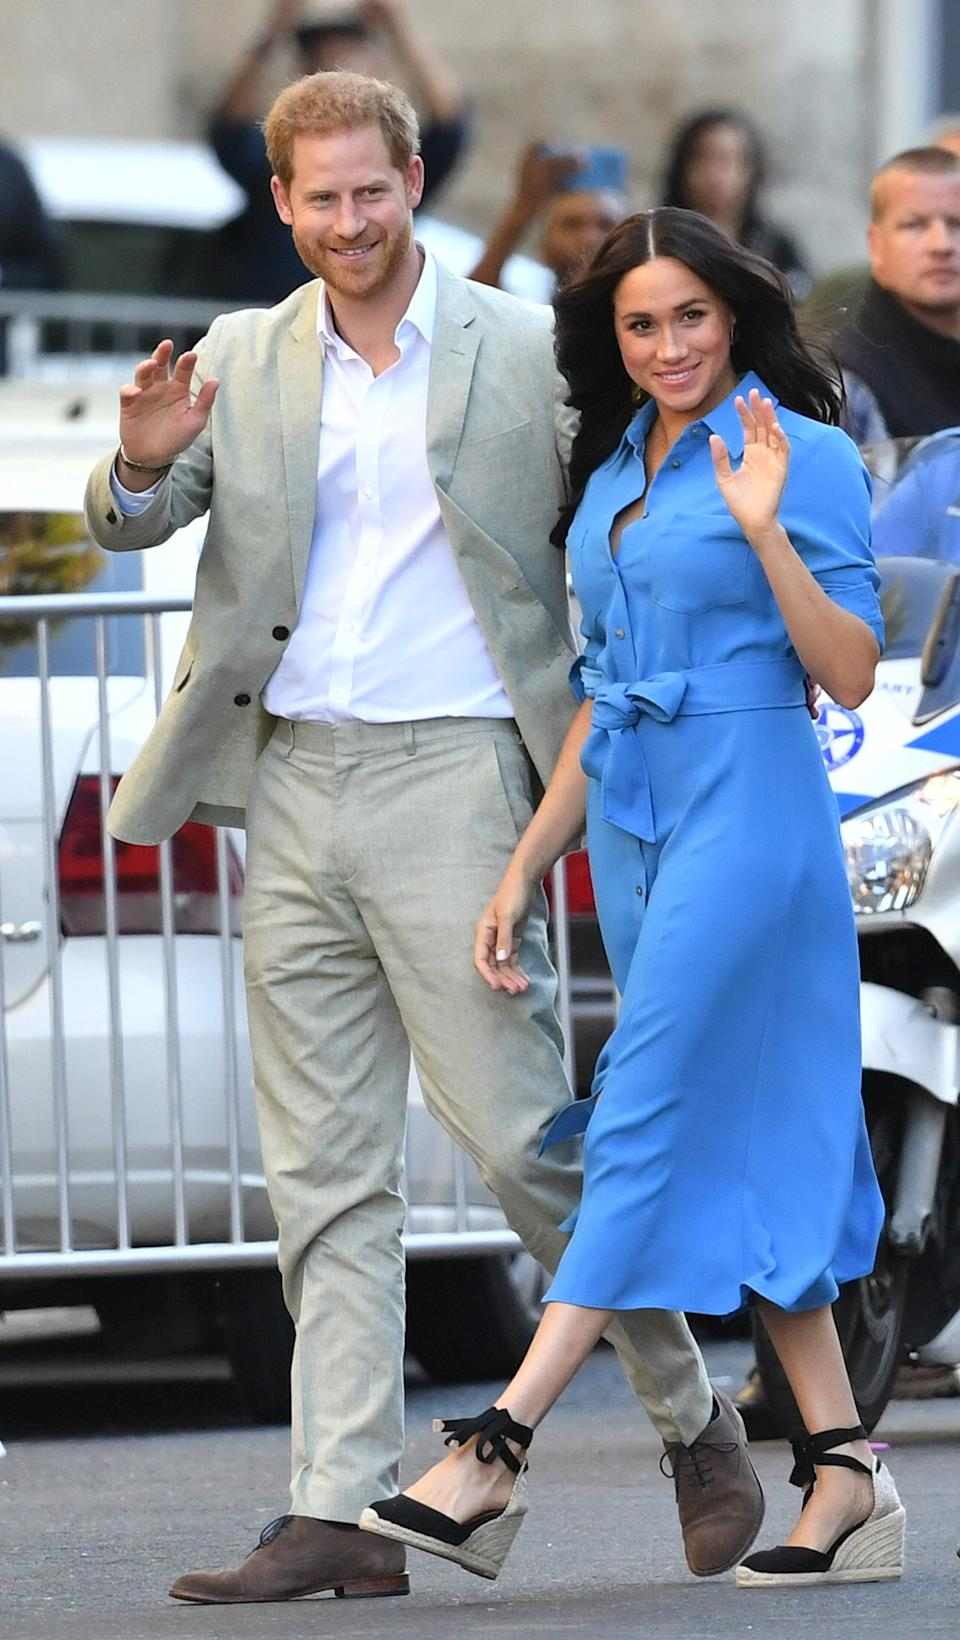 The Duke and Duchess of Sussex arrive for a visit to the District Six Museum in Cape Town. [Photo: Getty]